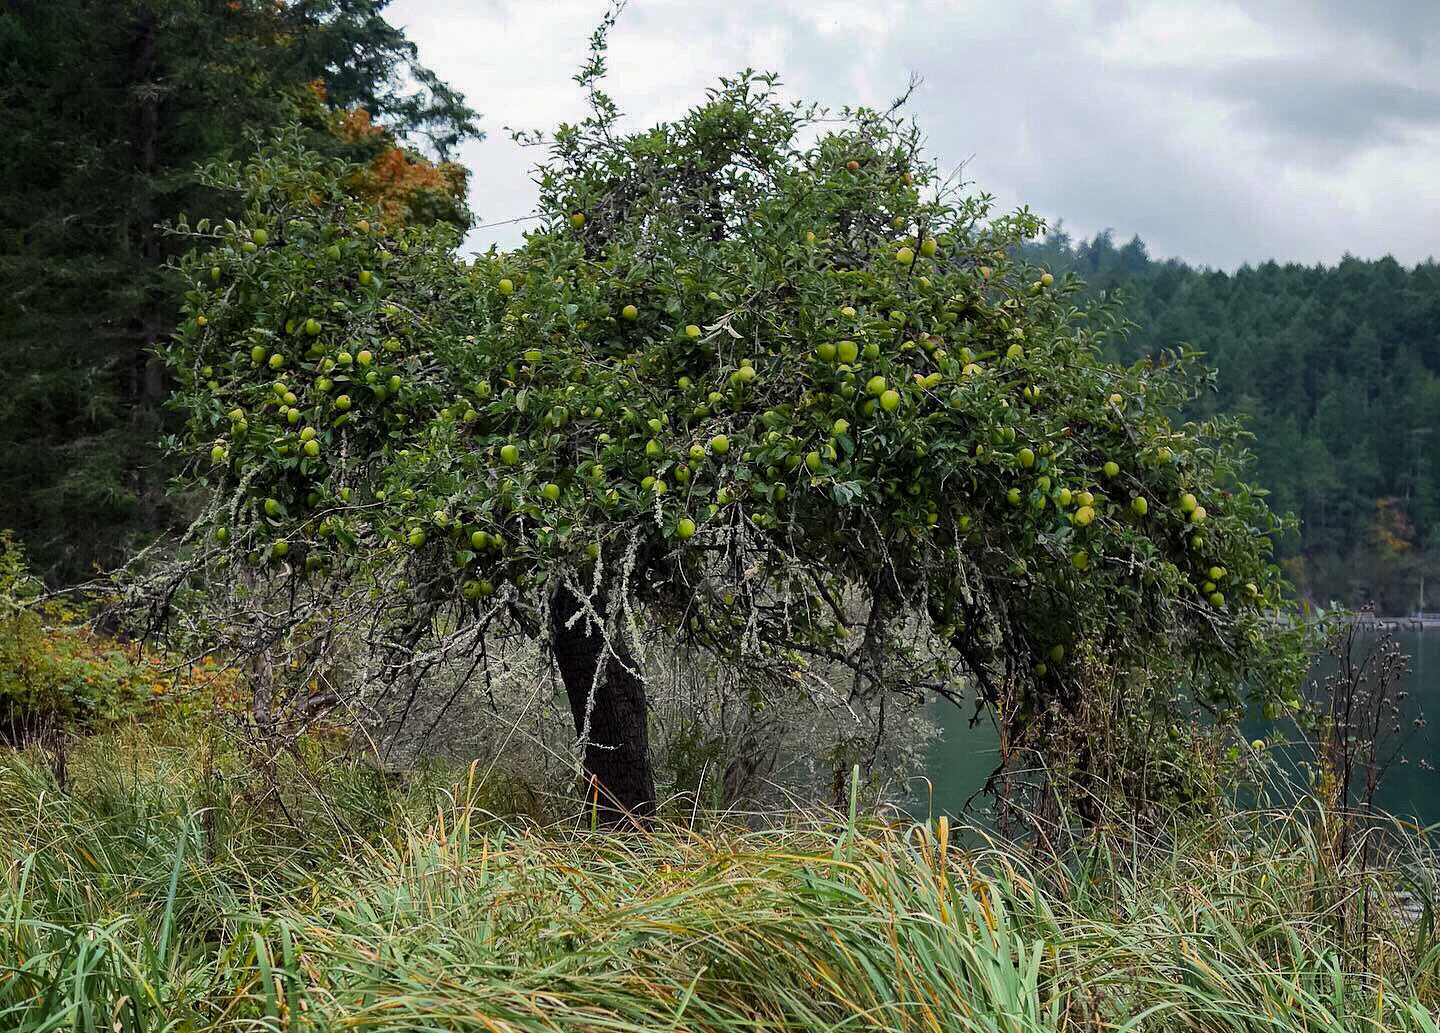 Twin Island Cider has many apply orchards including an original orchard that is decades old